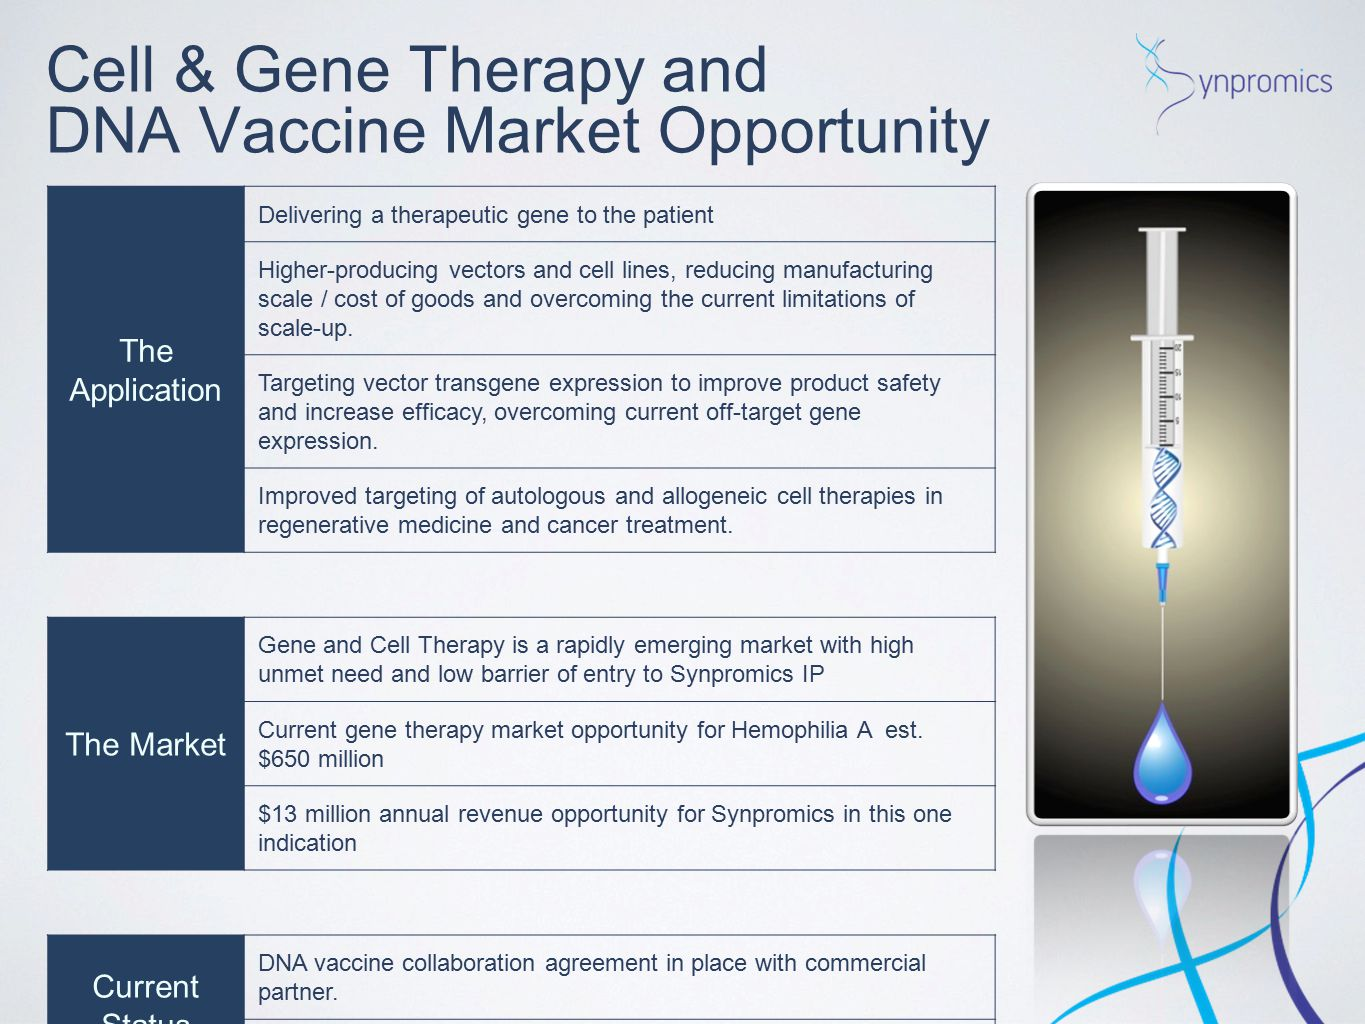 Cell & Gene Therapy and DNA Vaccine Market Opportunity